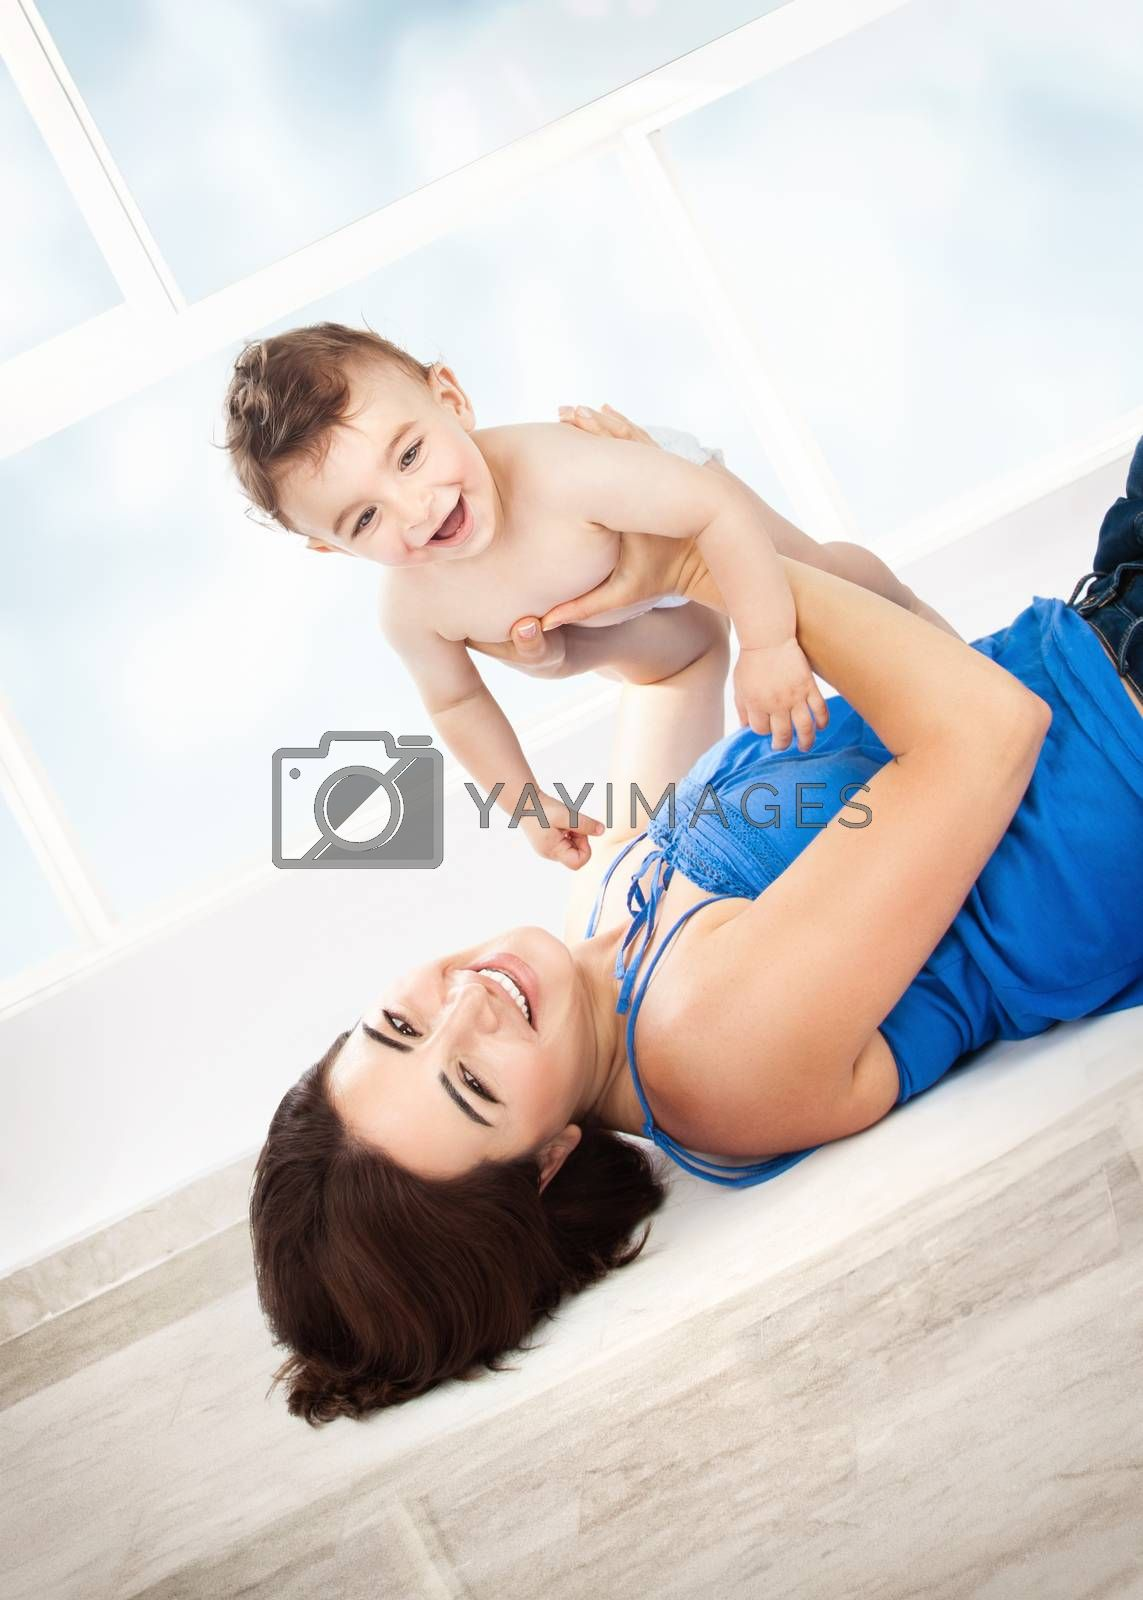 Cheerful joyful mother playing with her adorable son, lying down on the floor at home, enjoying motherhood, happy family life